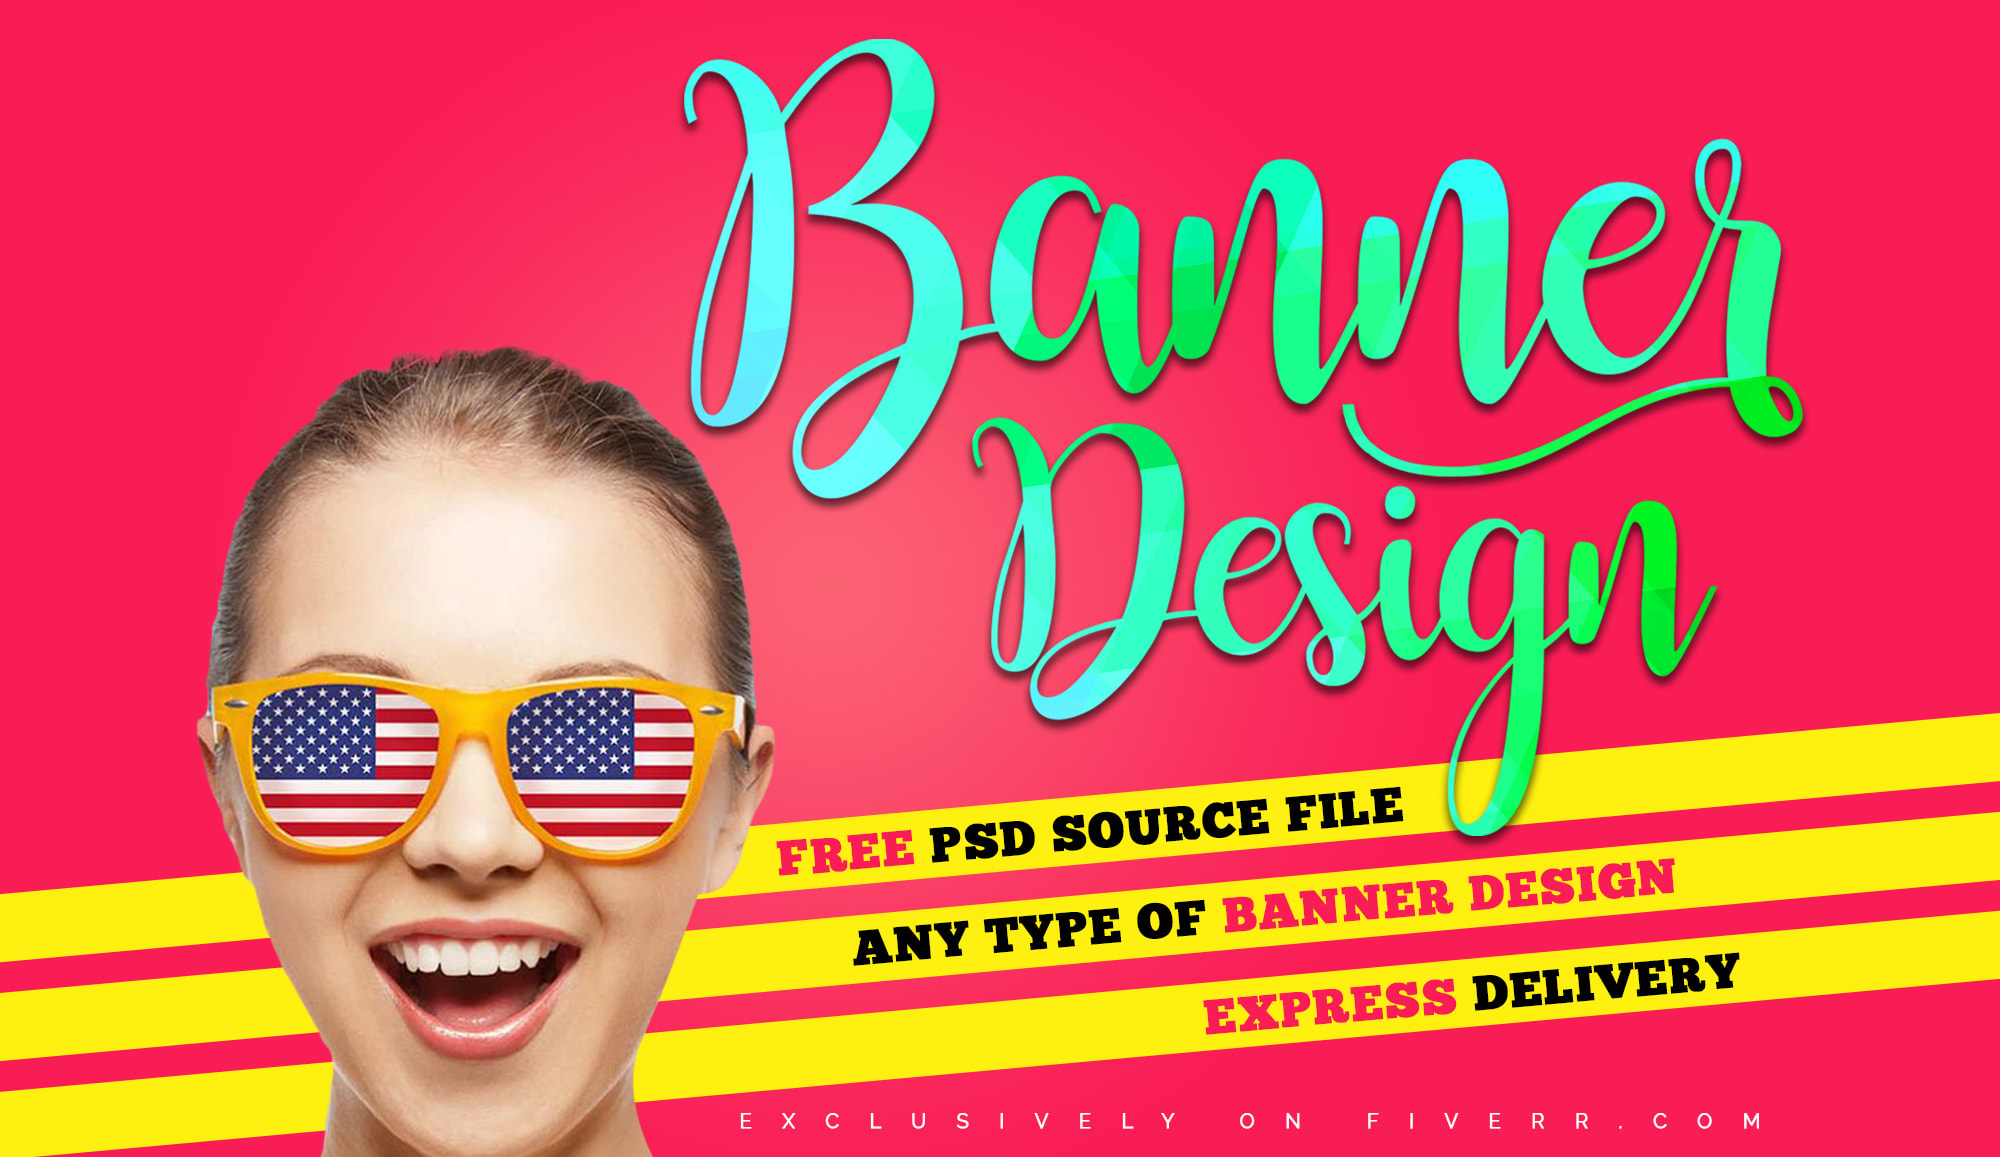 I will design 2 professional banner design